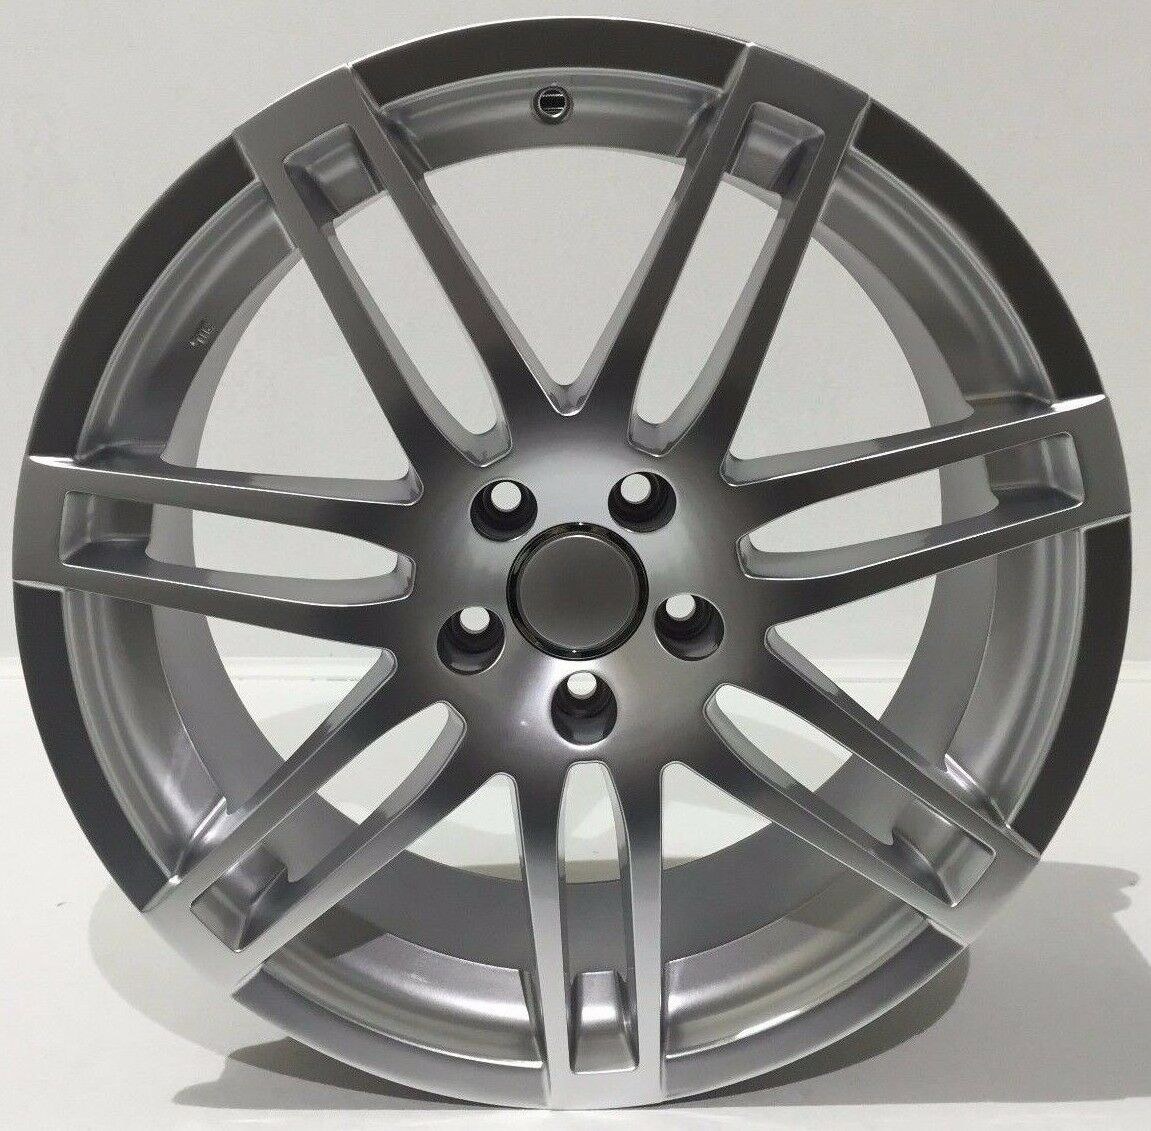 21 Split Spoke Alloy Wheels Fits Audi Q7 Porsche Cayanne 5x130 Cf Moto Z600 Wiring Diagram 1 De 3solo 2 Disponibles